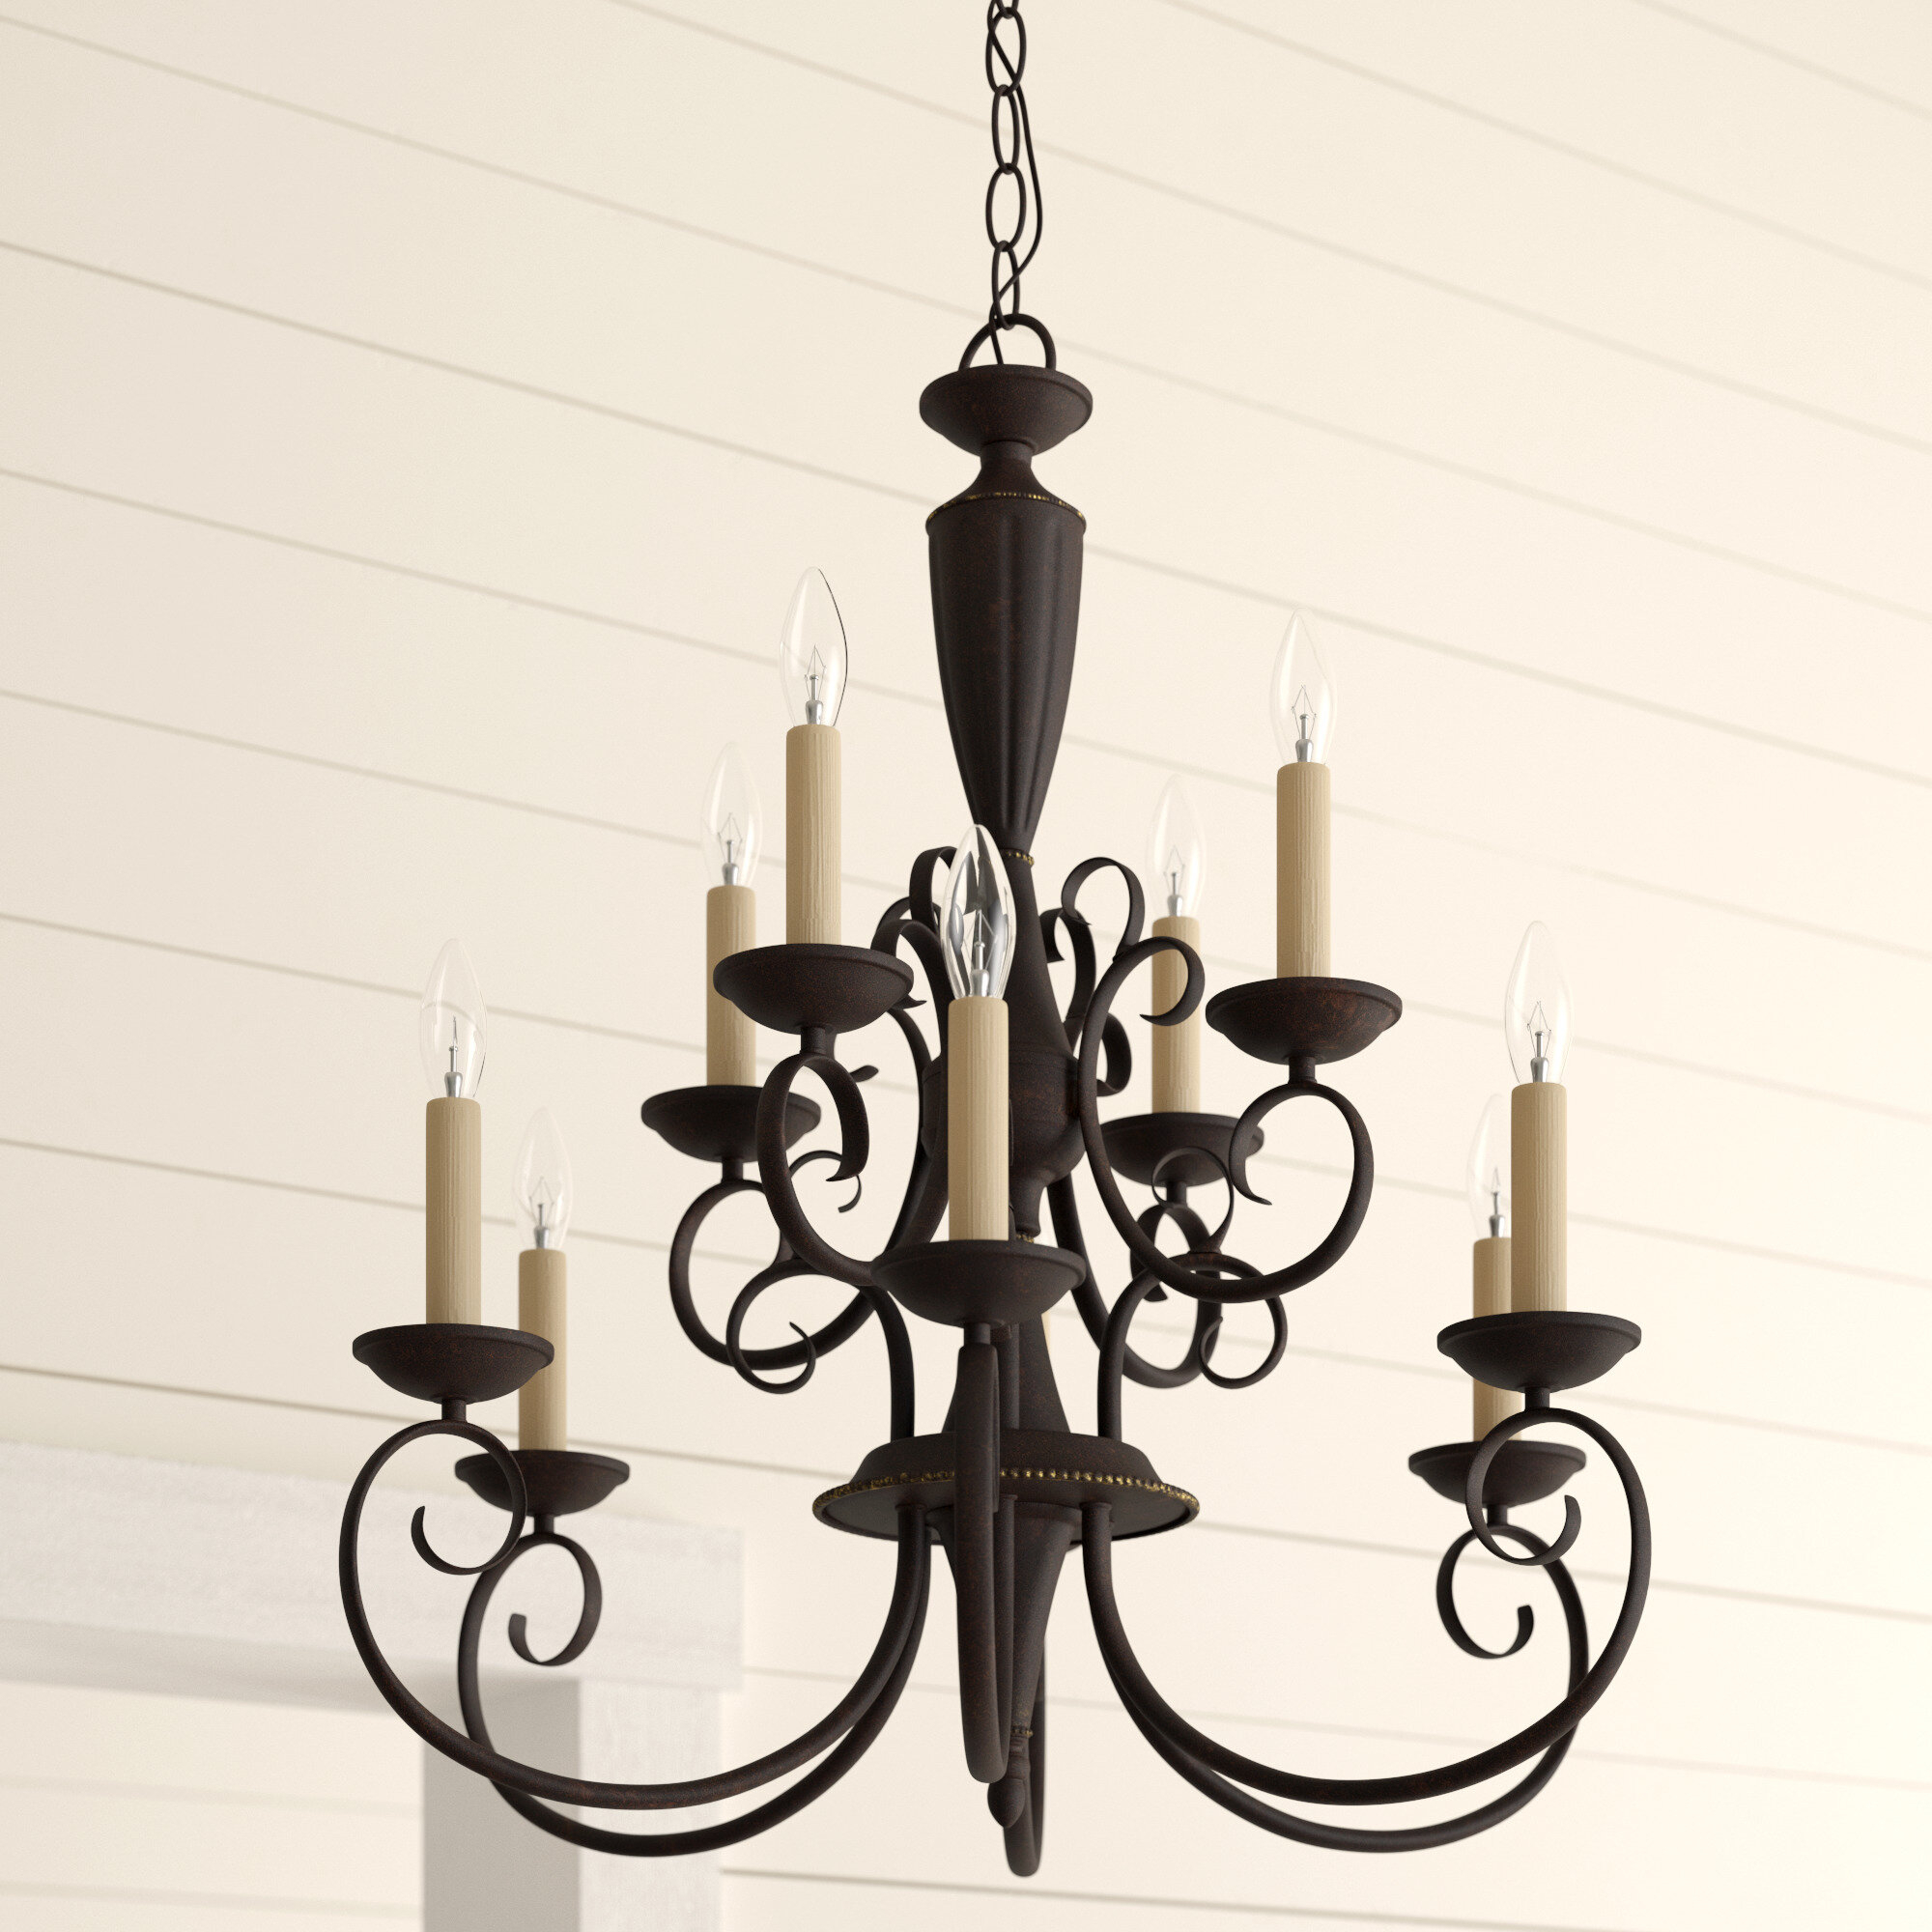 Farmhouse & Rustic Charlton Home Chandeliers | Birch Lane Regarding Kenedy 9 Light Candle Style Chandeliers (View 21 of 30)